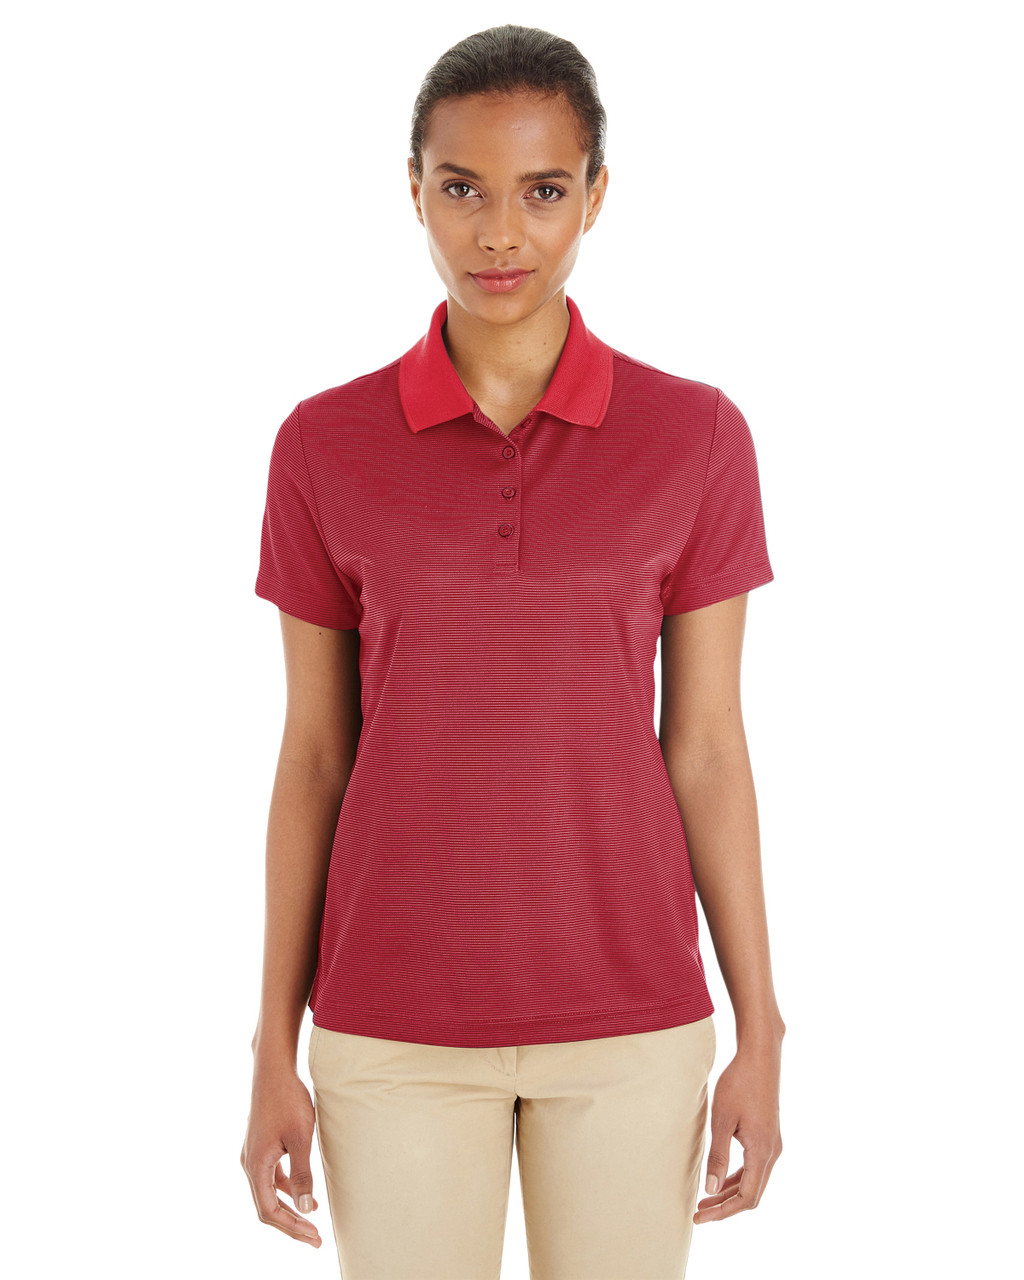 Classic Red / Carbon - CE102W Ash City - Core 365 Ladies' Express Microstripe Performance Piqué Polo Shirt   Blankclothing.ca